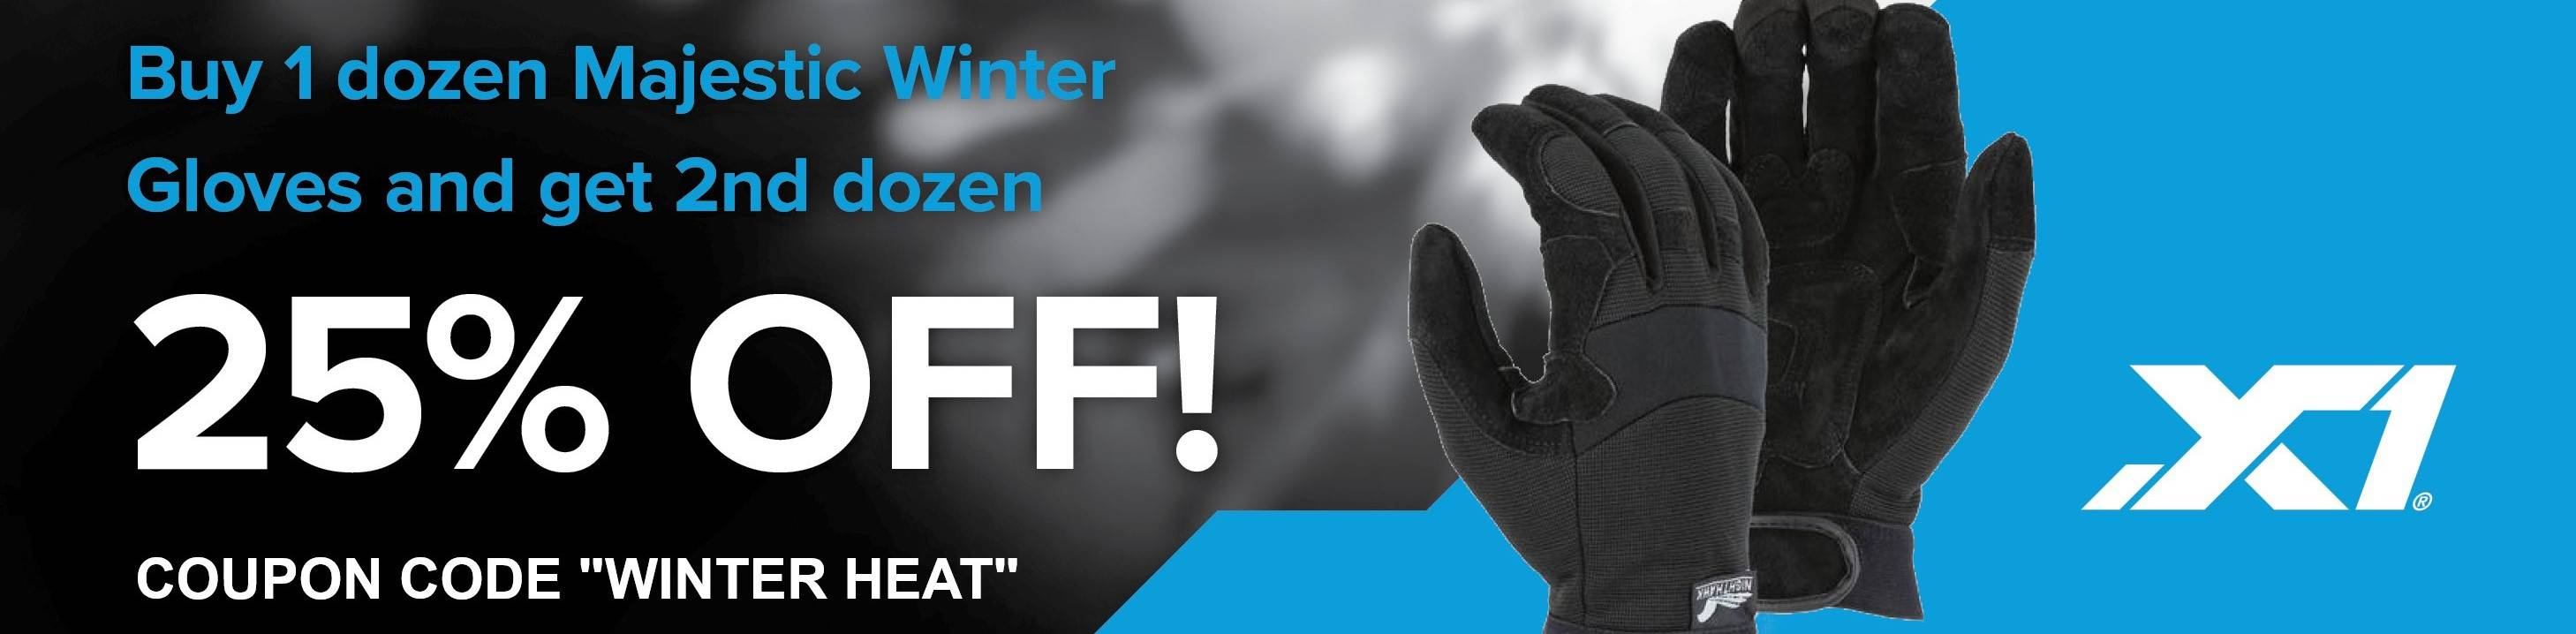 Buy 1 Dozen Winter Lined Gloves from Majestic, Get the Second Dozen 25% Off